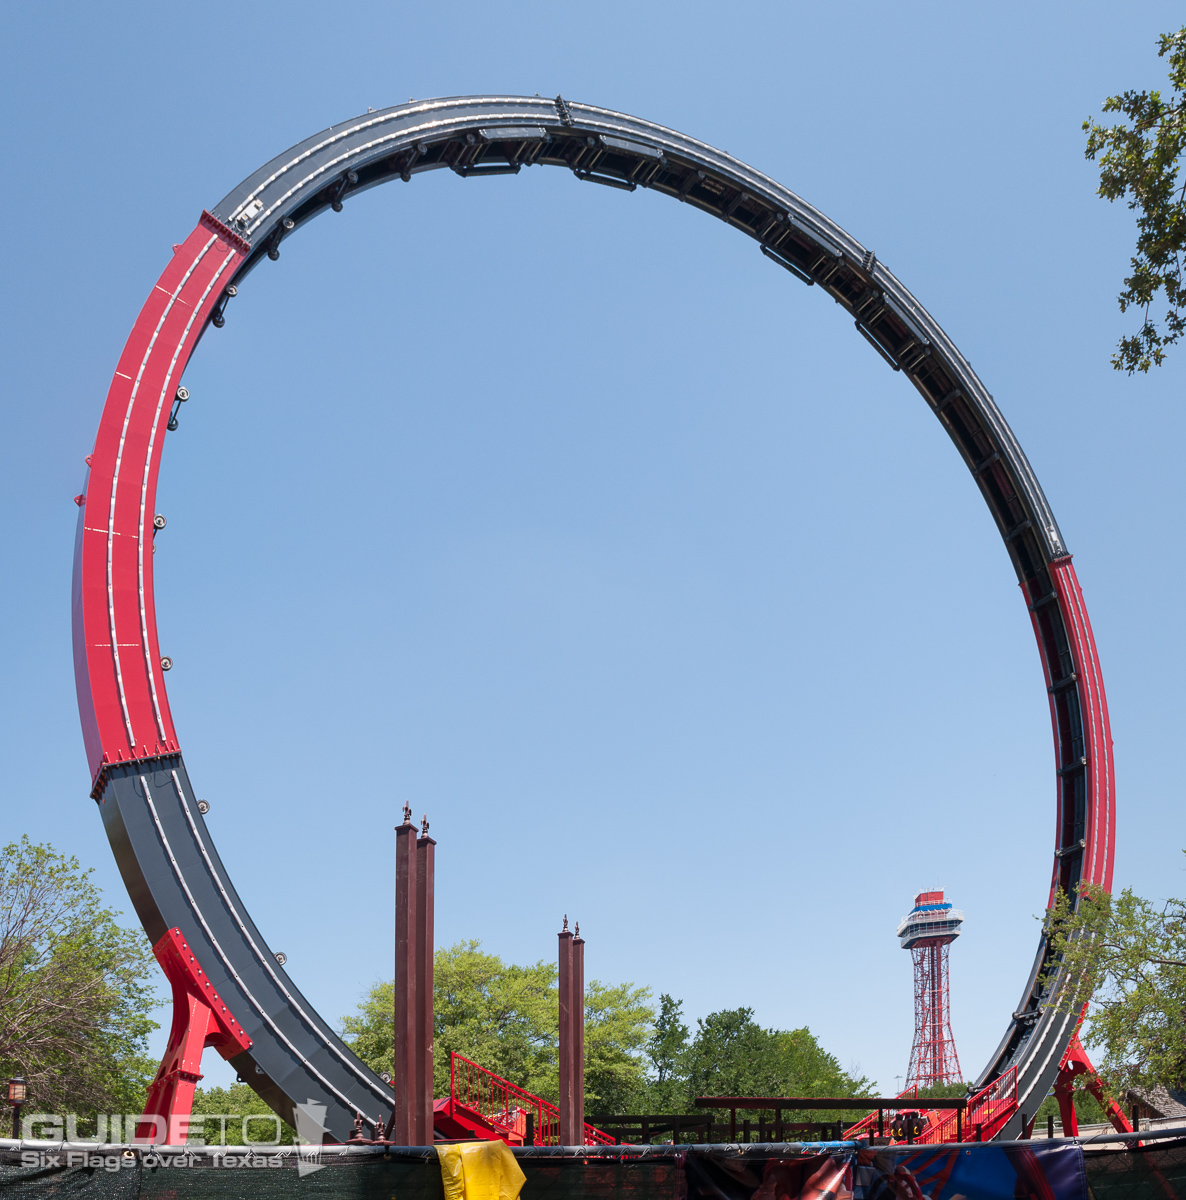 Six Flags Over Texas Rides Guide To Sfot